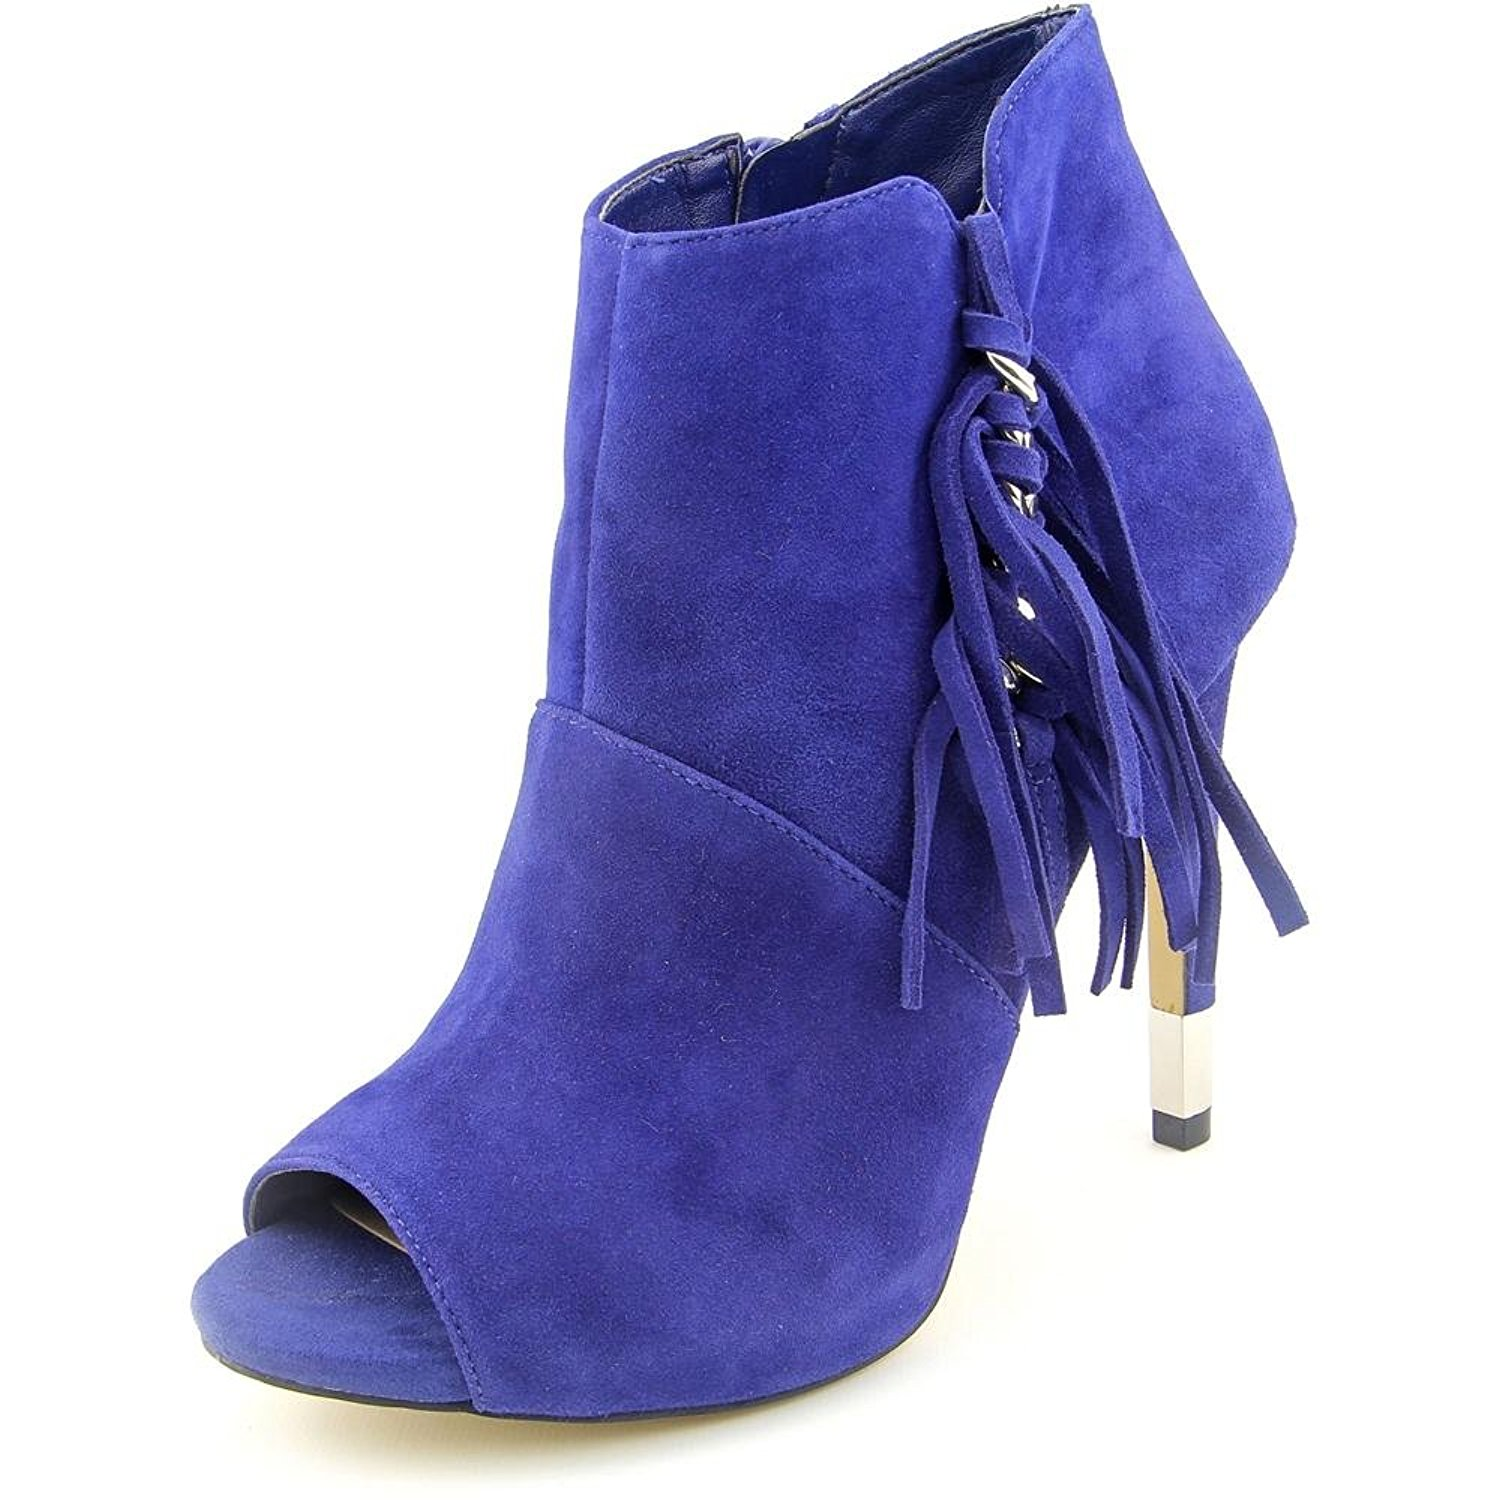 GUESS Womens AZIZ Peep Toe Ankle Fashion Boots Blue Size 6.0